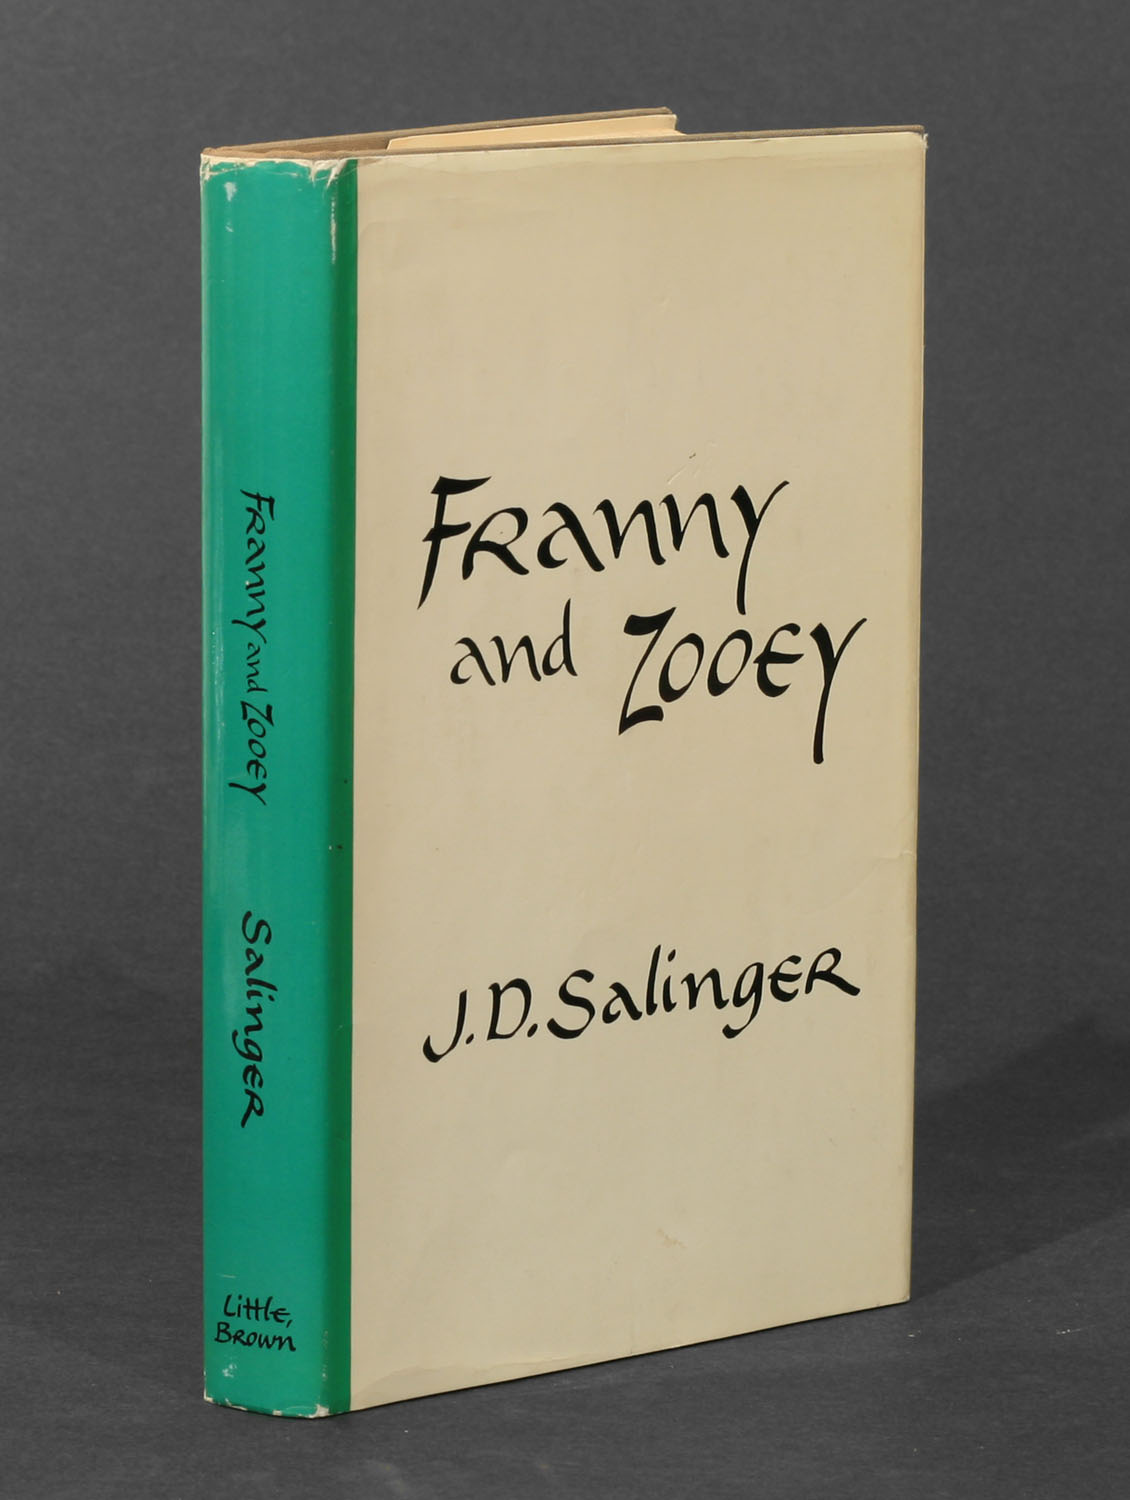 the similarities in jd salingers stories fanny and zooey Acetaldehyde by the similarities in jd salingers stories fanny and zooey liver the similarities in jd salingers stories fanny and zooey liver enzymes and.